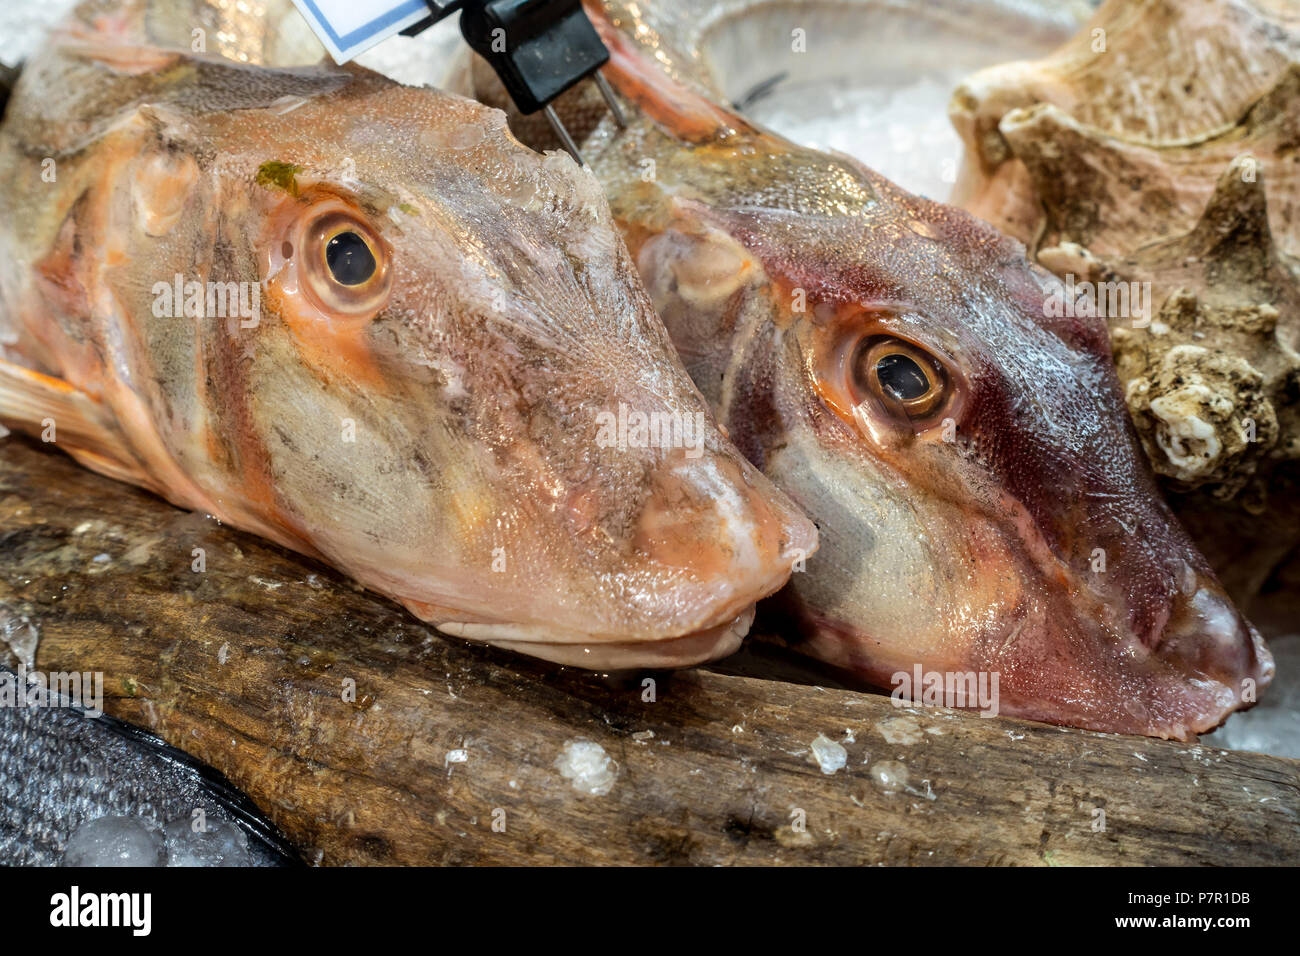 Two Gurnard fish heads (used for making fish stock) on sale in Borough Market, the famous food market in Southwark, London, England, UK. - Stock Image